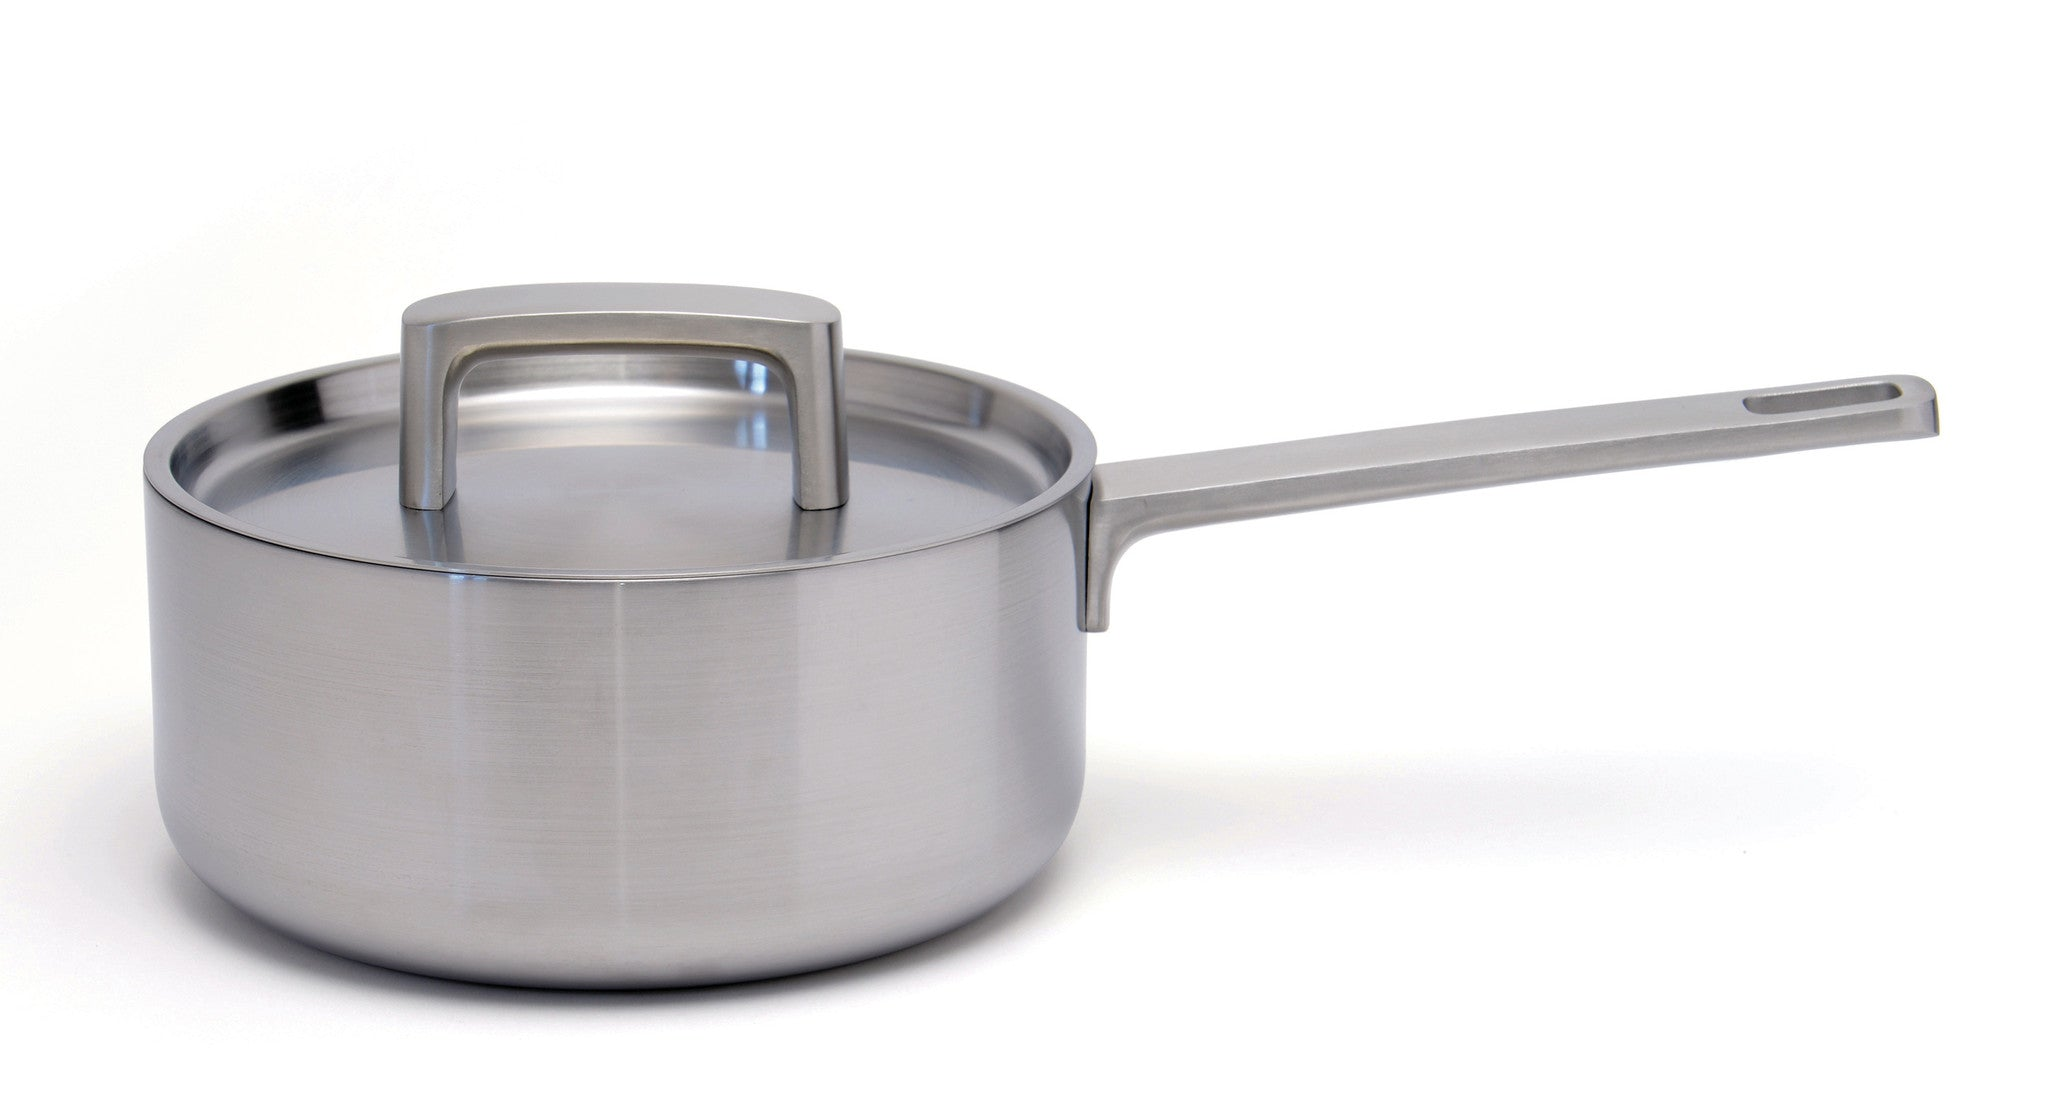 Ron 5-ply 18cm Stainless Steel Saucepan with Lid